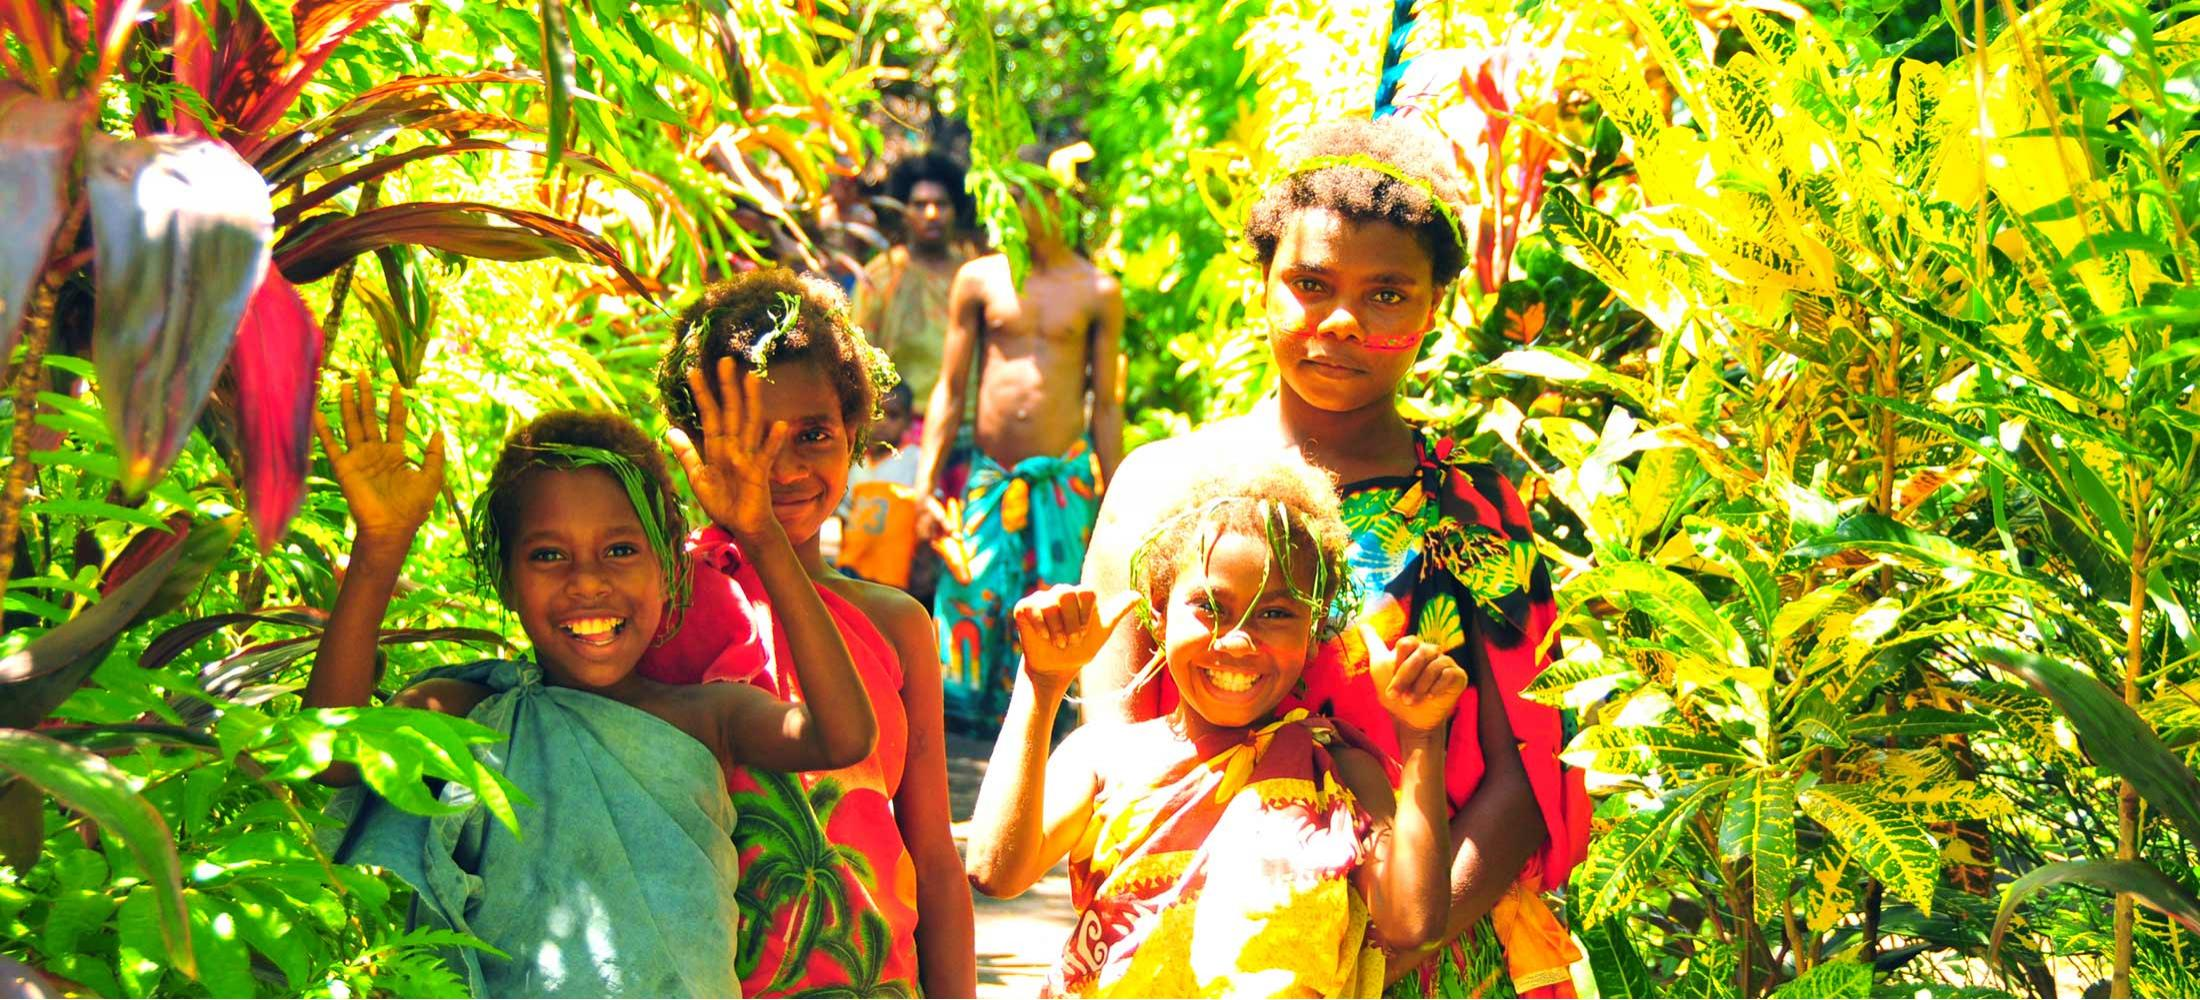 South Pacific Tours Vanuatu - Man tanna